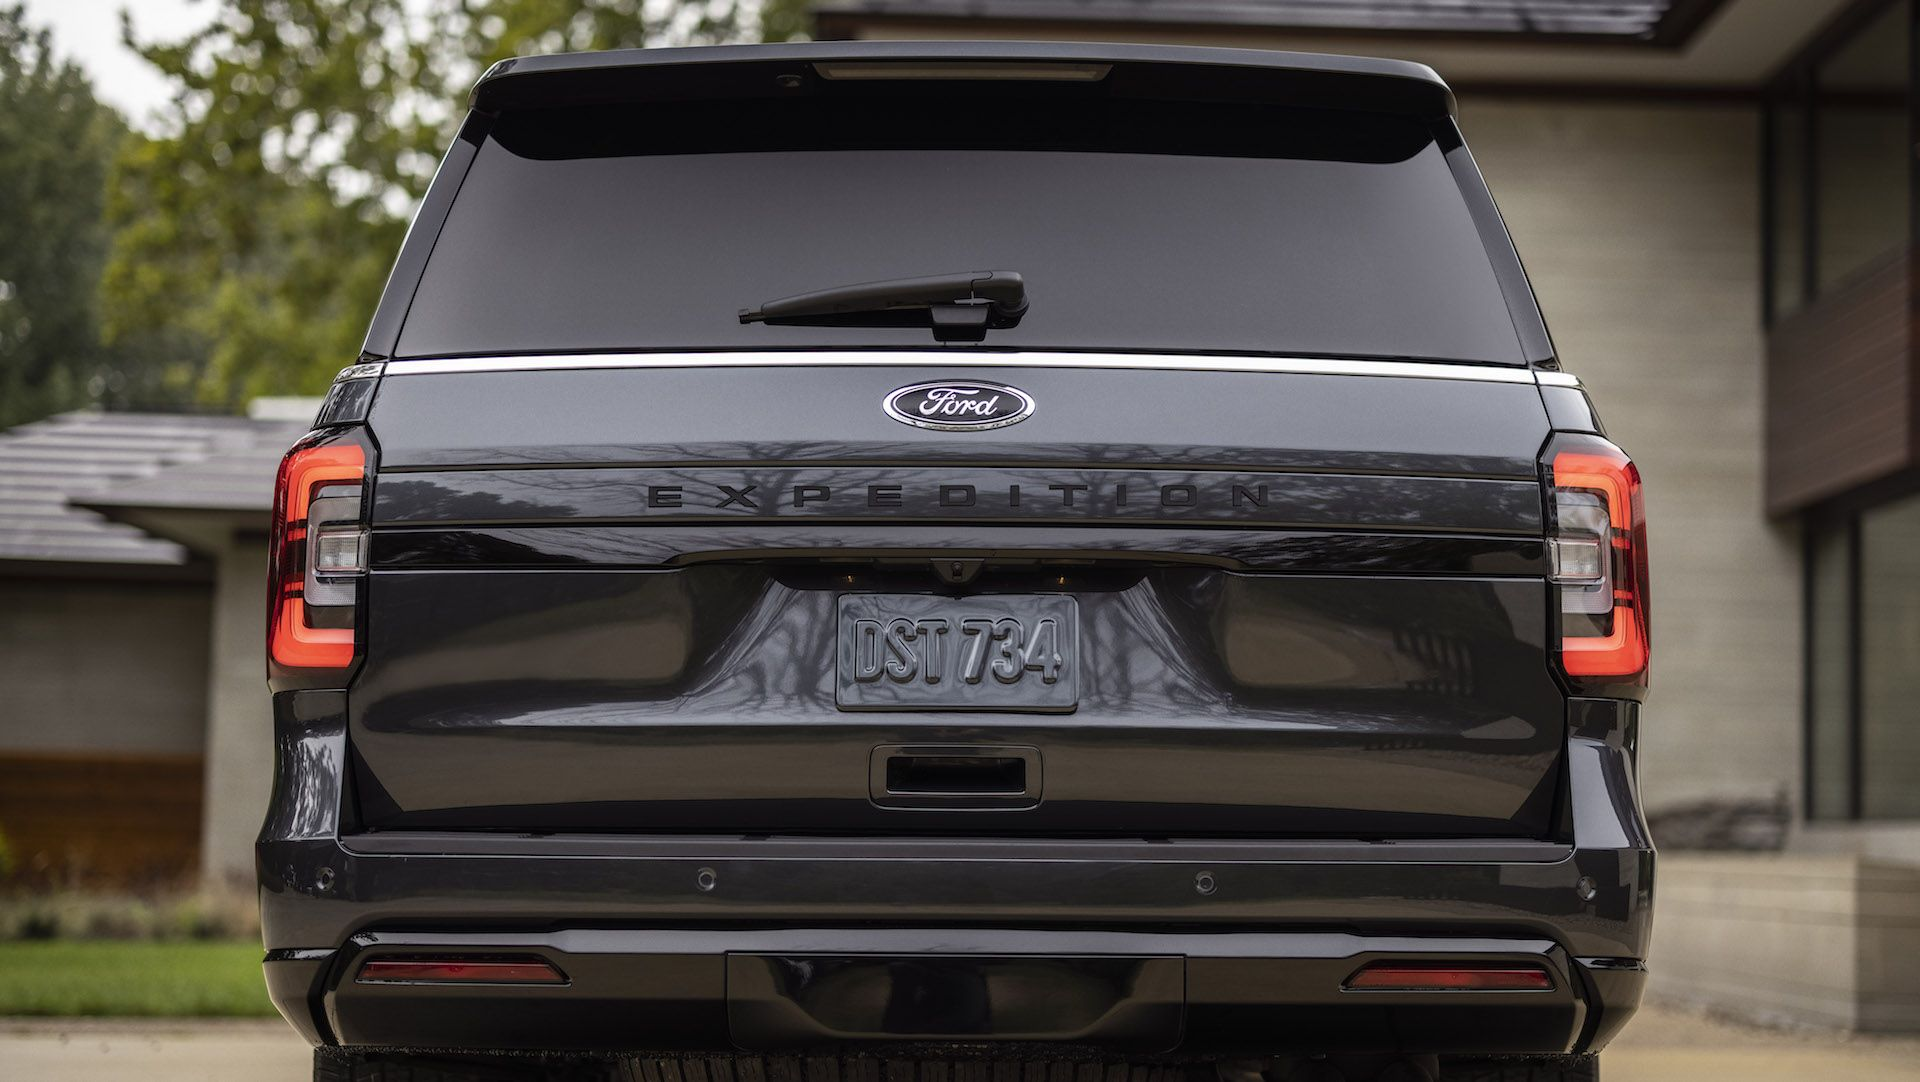 2022-Ford-Expedition-Stealth-00020-1